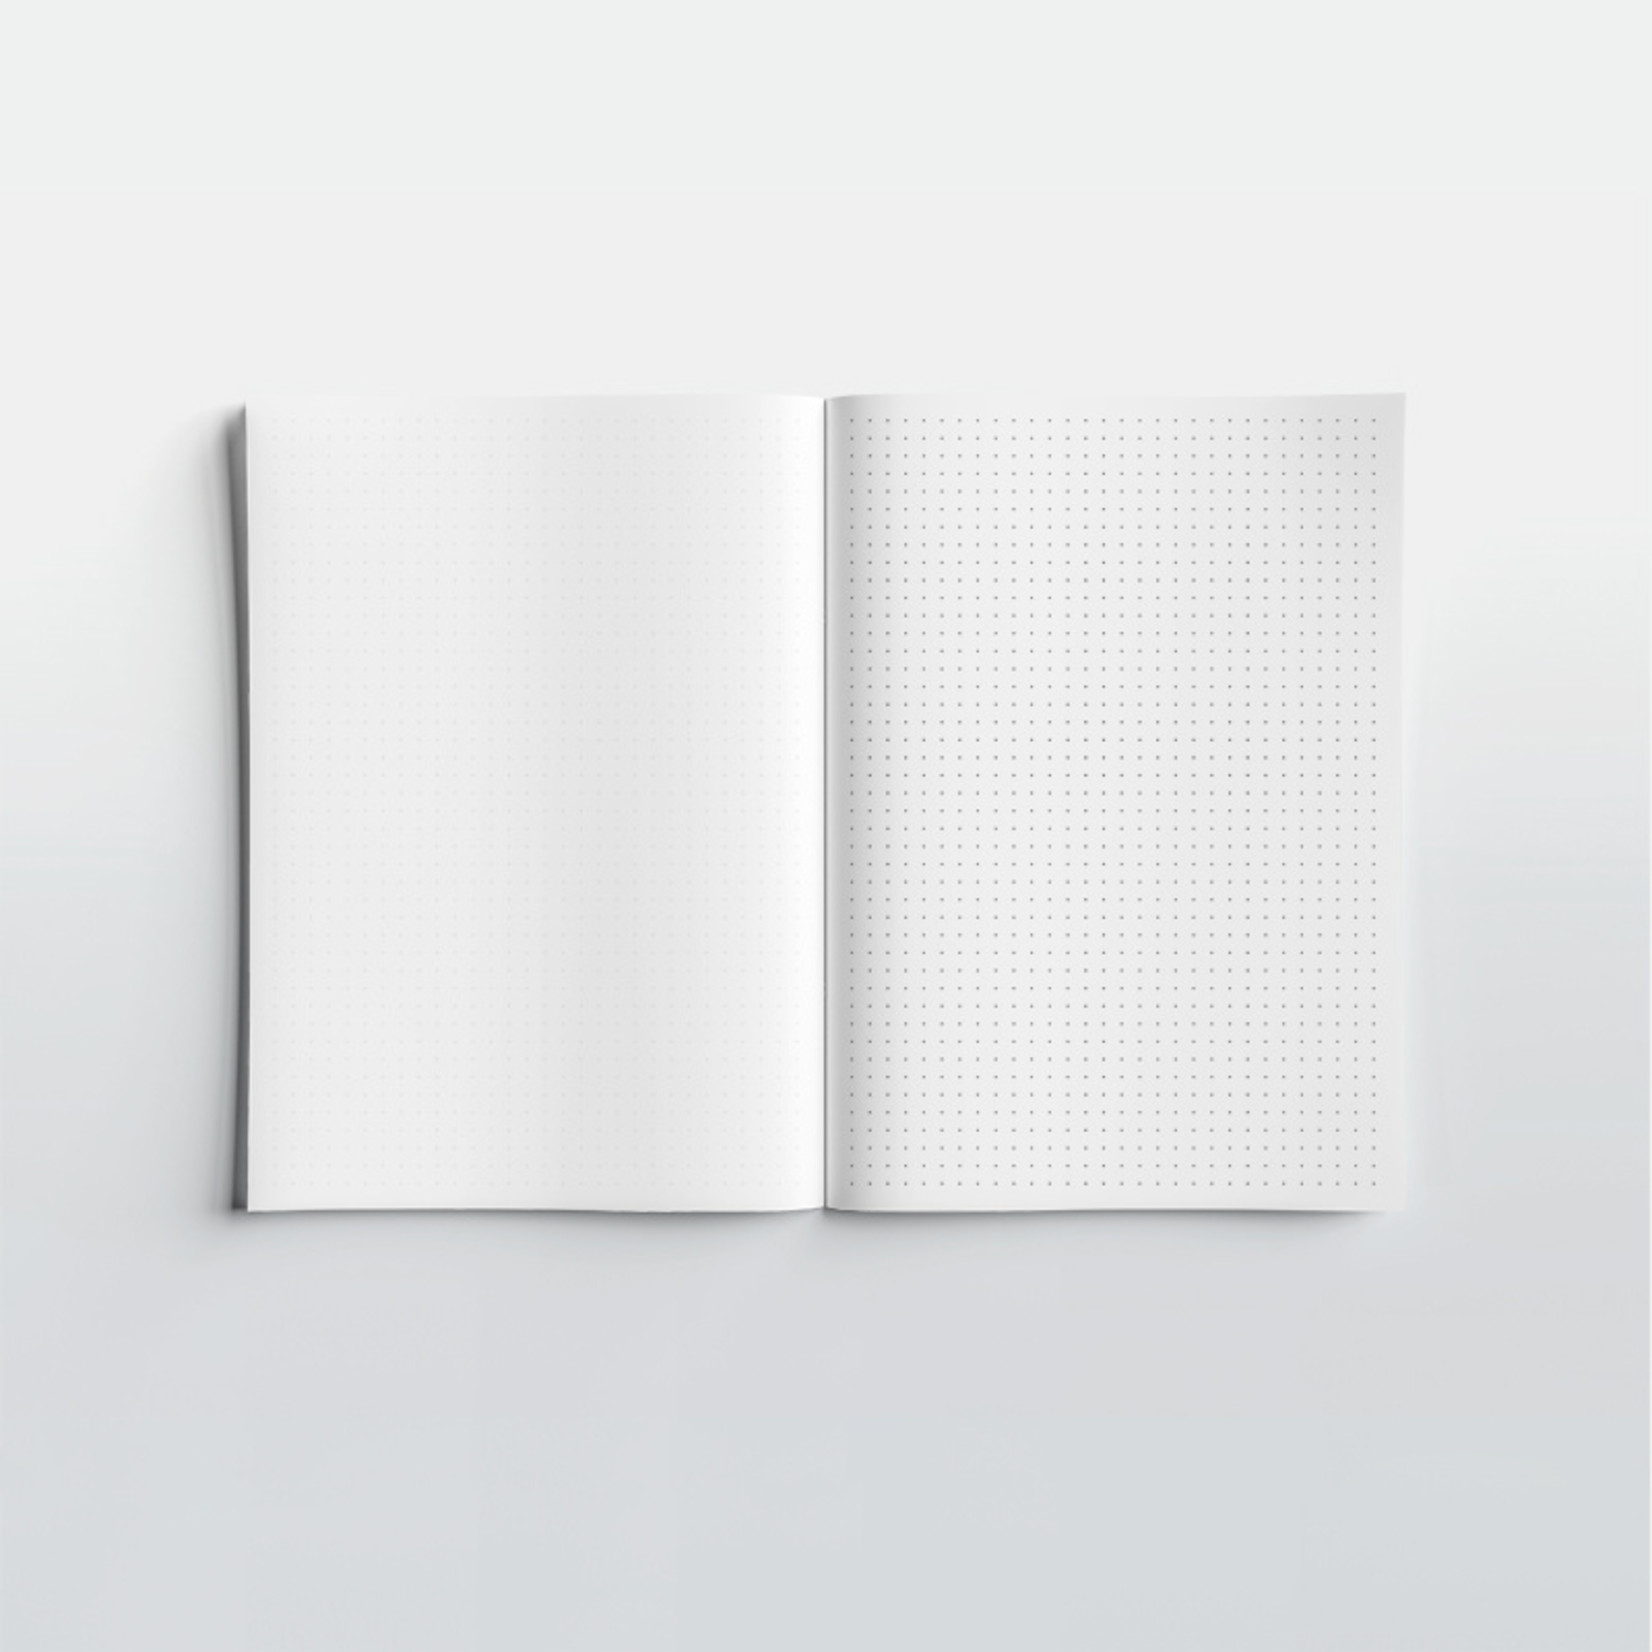 All the ways to say Notebook: A5 Palmgrove